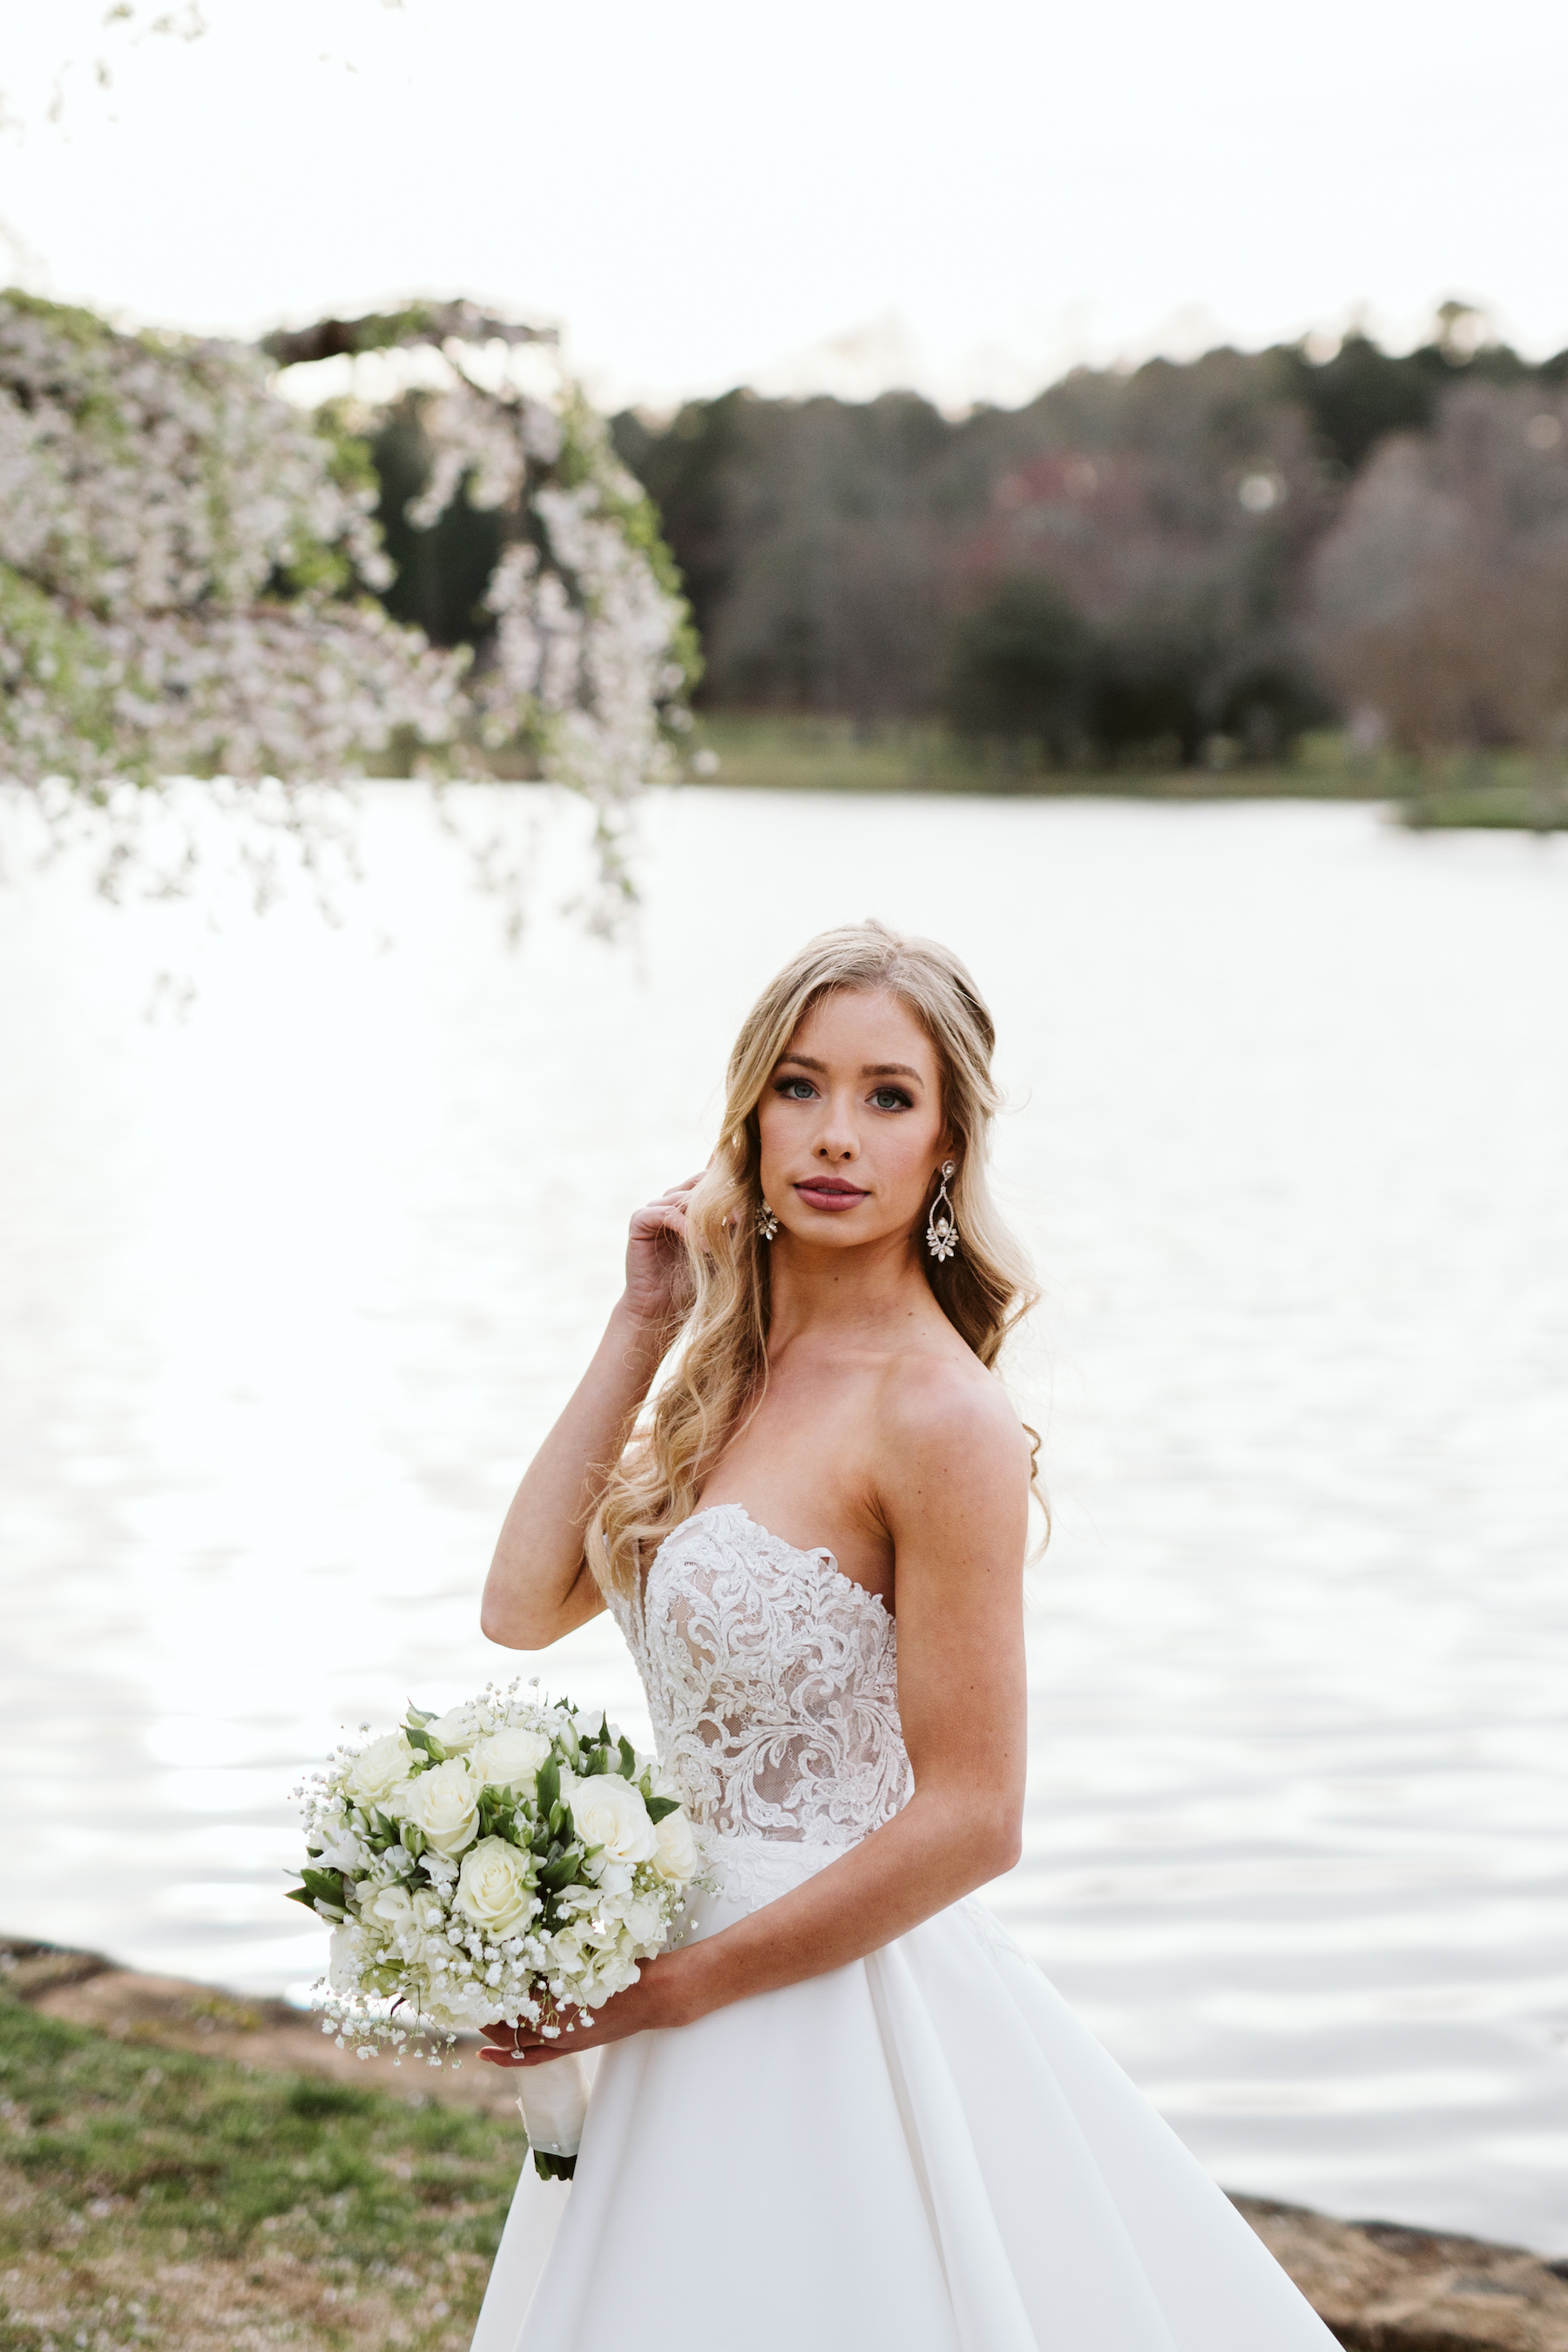 furman-university-bridals-paige-213.JPG